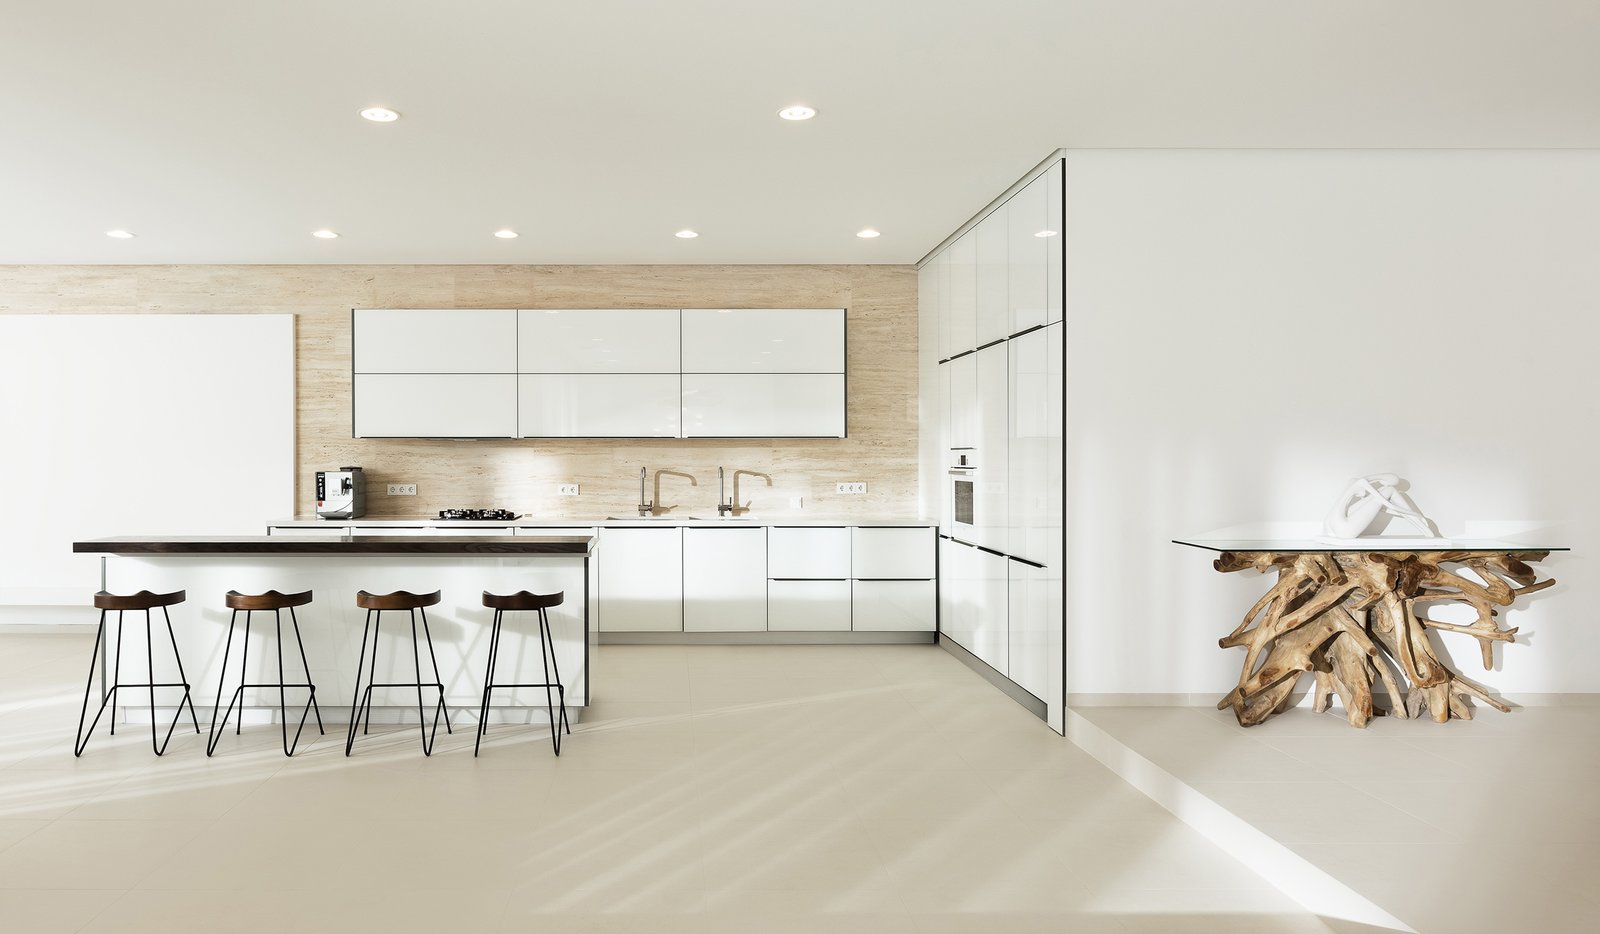 Kitchen, Quartzite, Stone, White, Wood, Metal, Travertine, Porcelain Tile, Stone Slab, Ceiling, Refrigerator, Wall Oven, Microwave, Dishwasher, Ice Maker, Cooktops, and Drop In WH Residence | M3 Architects  Best Kitchen Cooktops Drop In Wall Oven Ice Maker Dishwasher Metal Photos from WH Residence